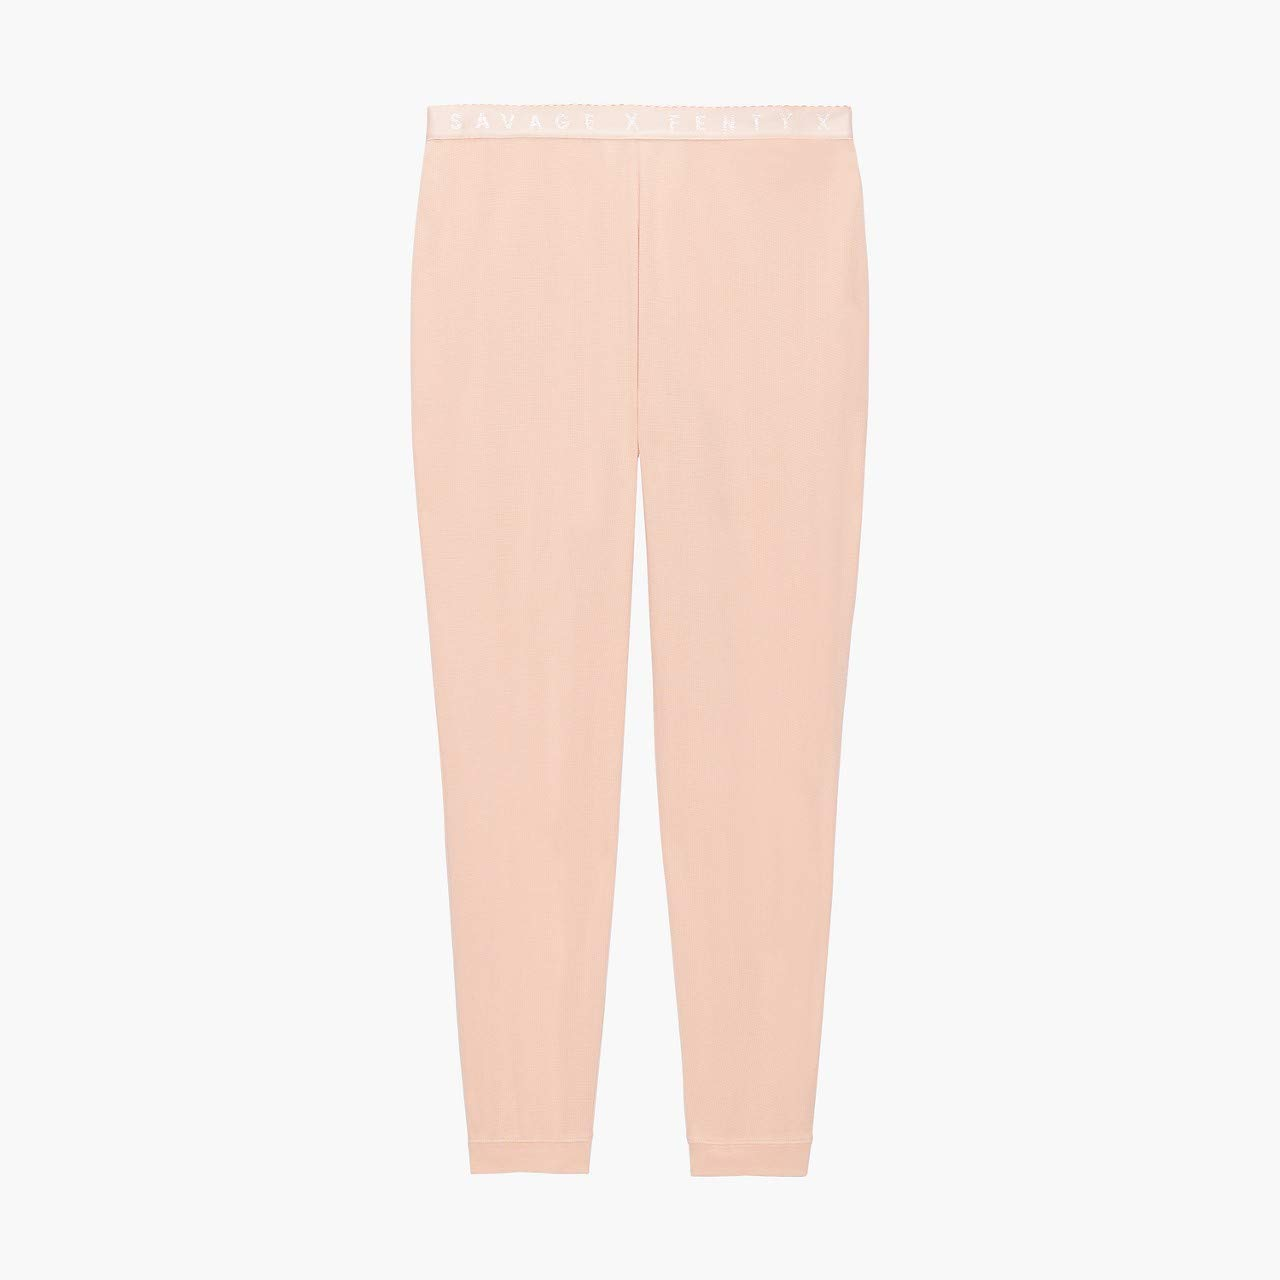 Savage X Fenty Women's Curvy Savage X Thermal Pant, Naked Pink Rose, 2X by Savage X Fenty